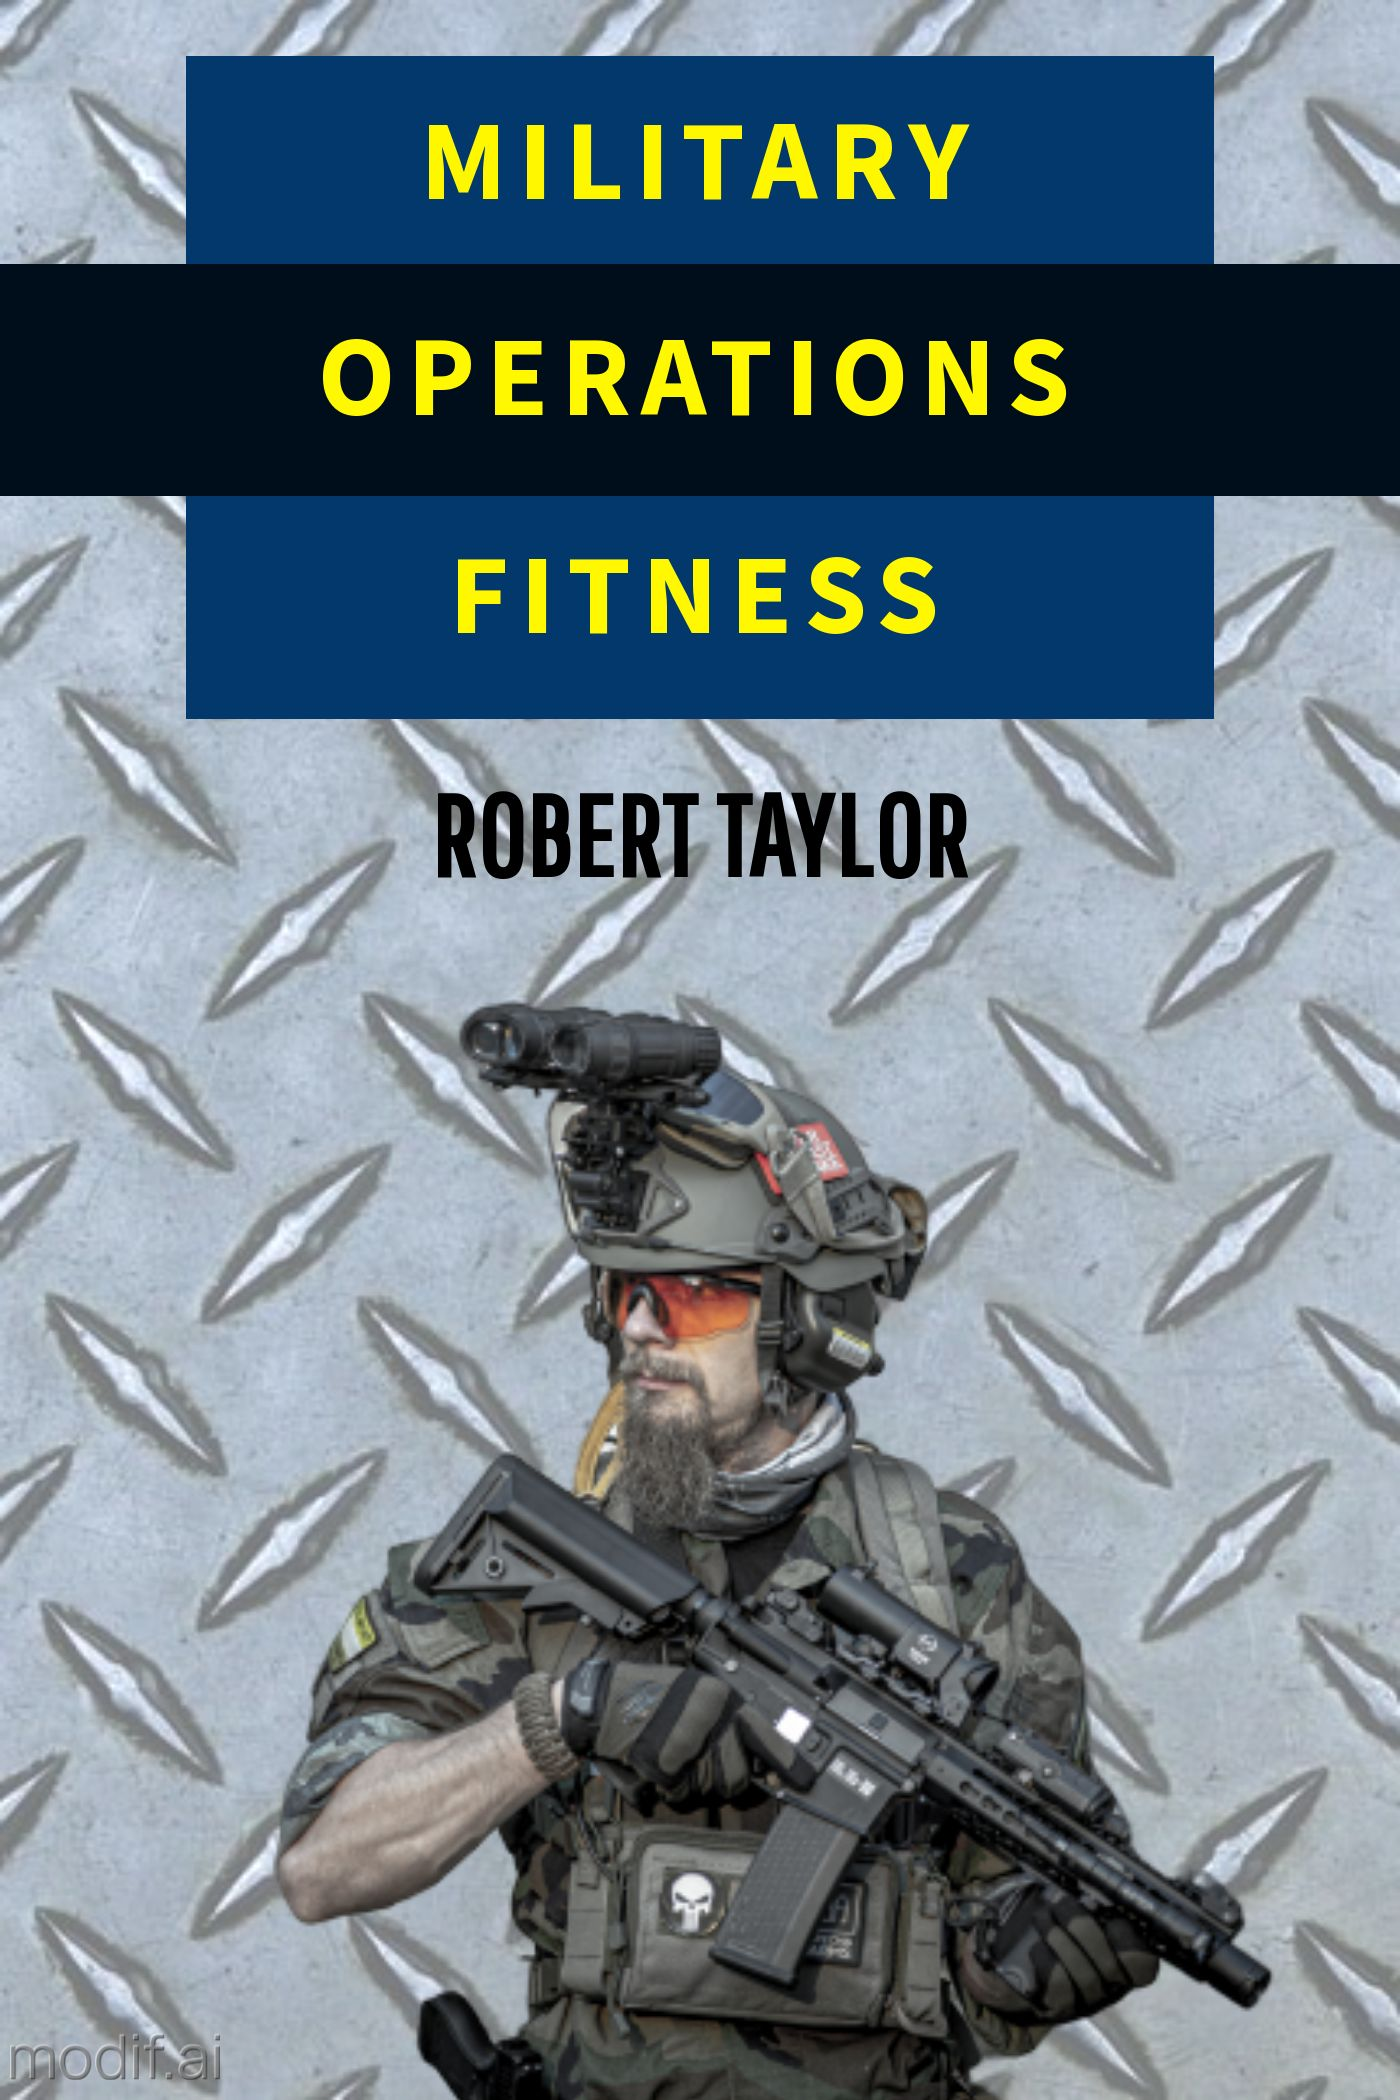 Military Workout Book Cover Maker